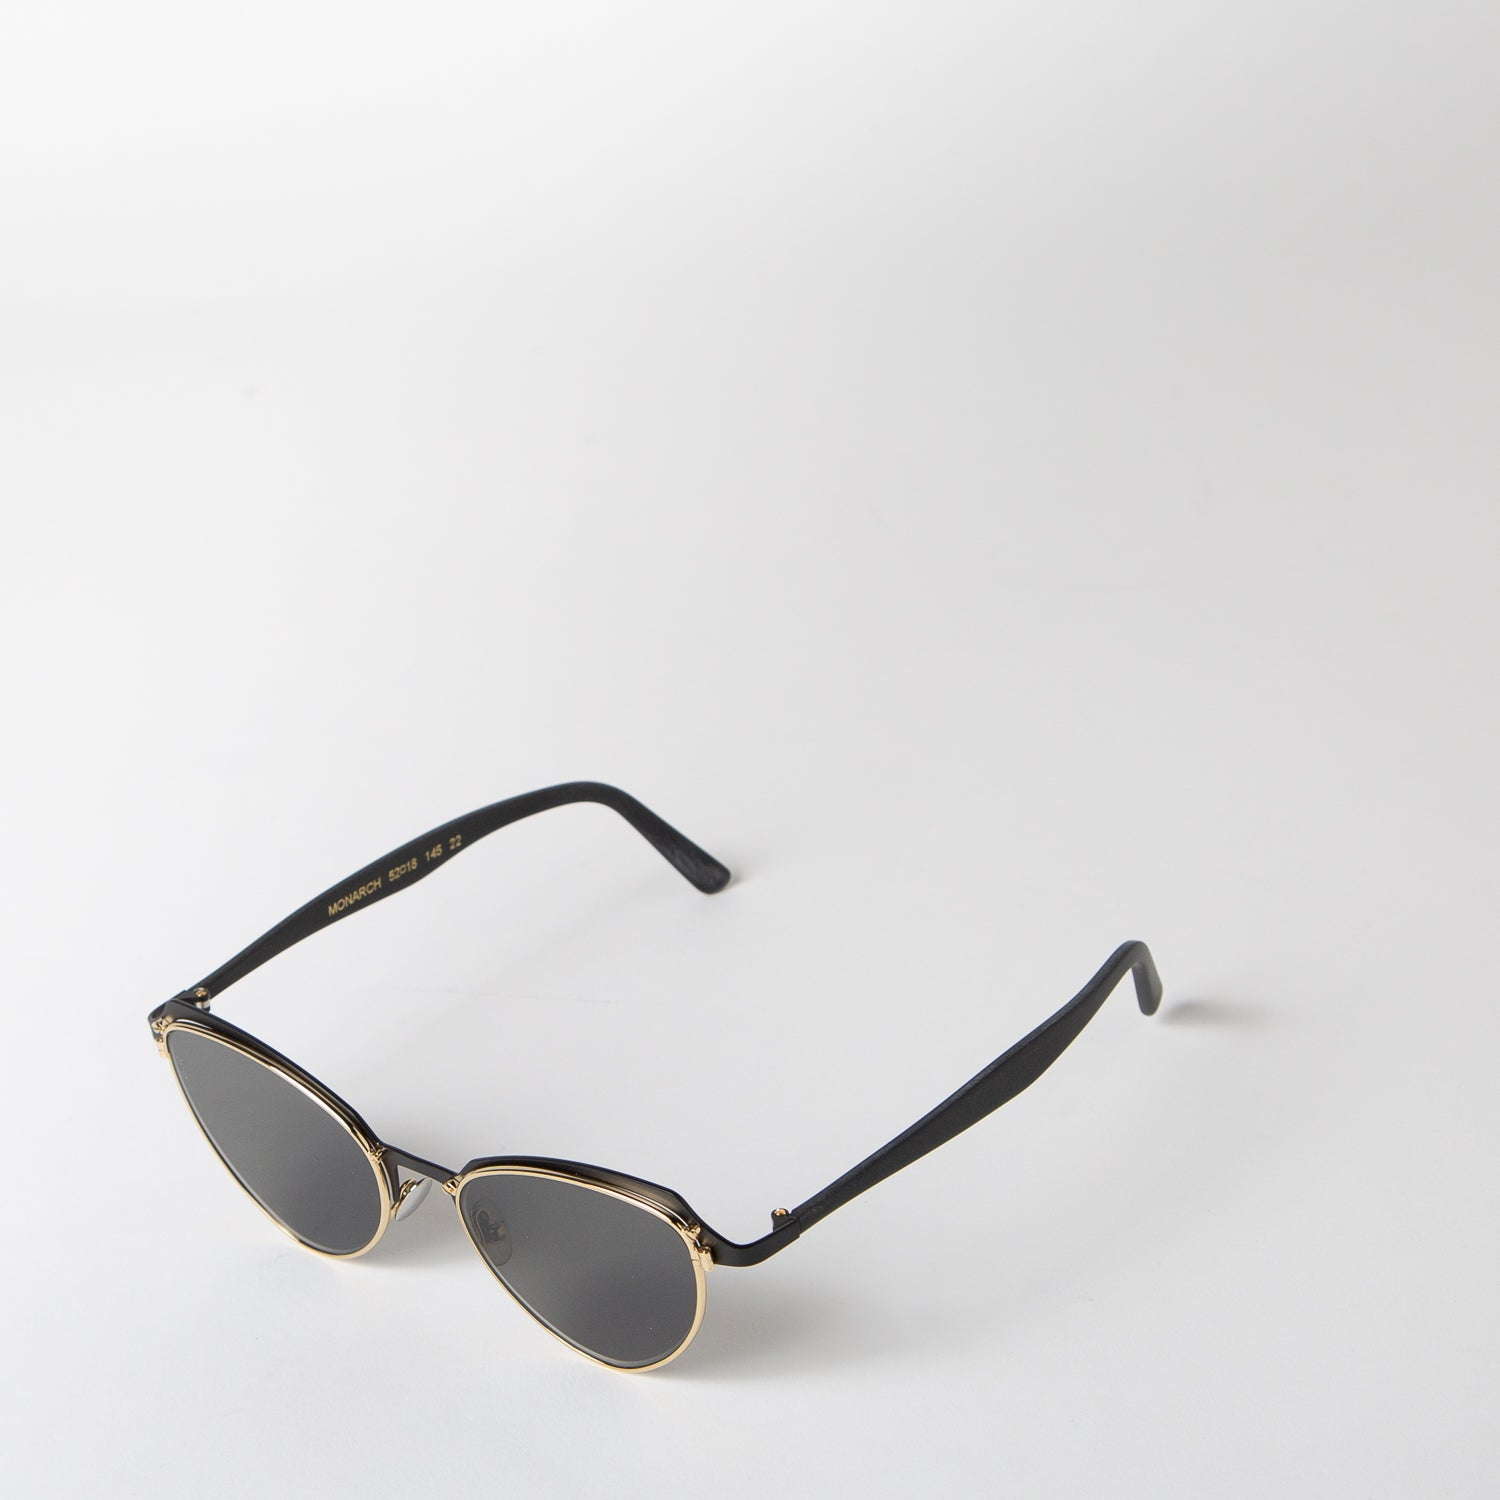 Monarch Sunglasses, black & grey